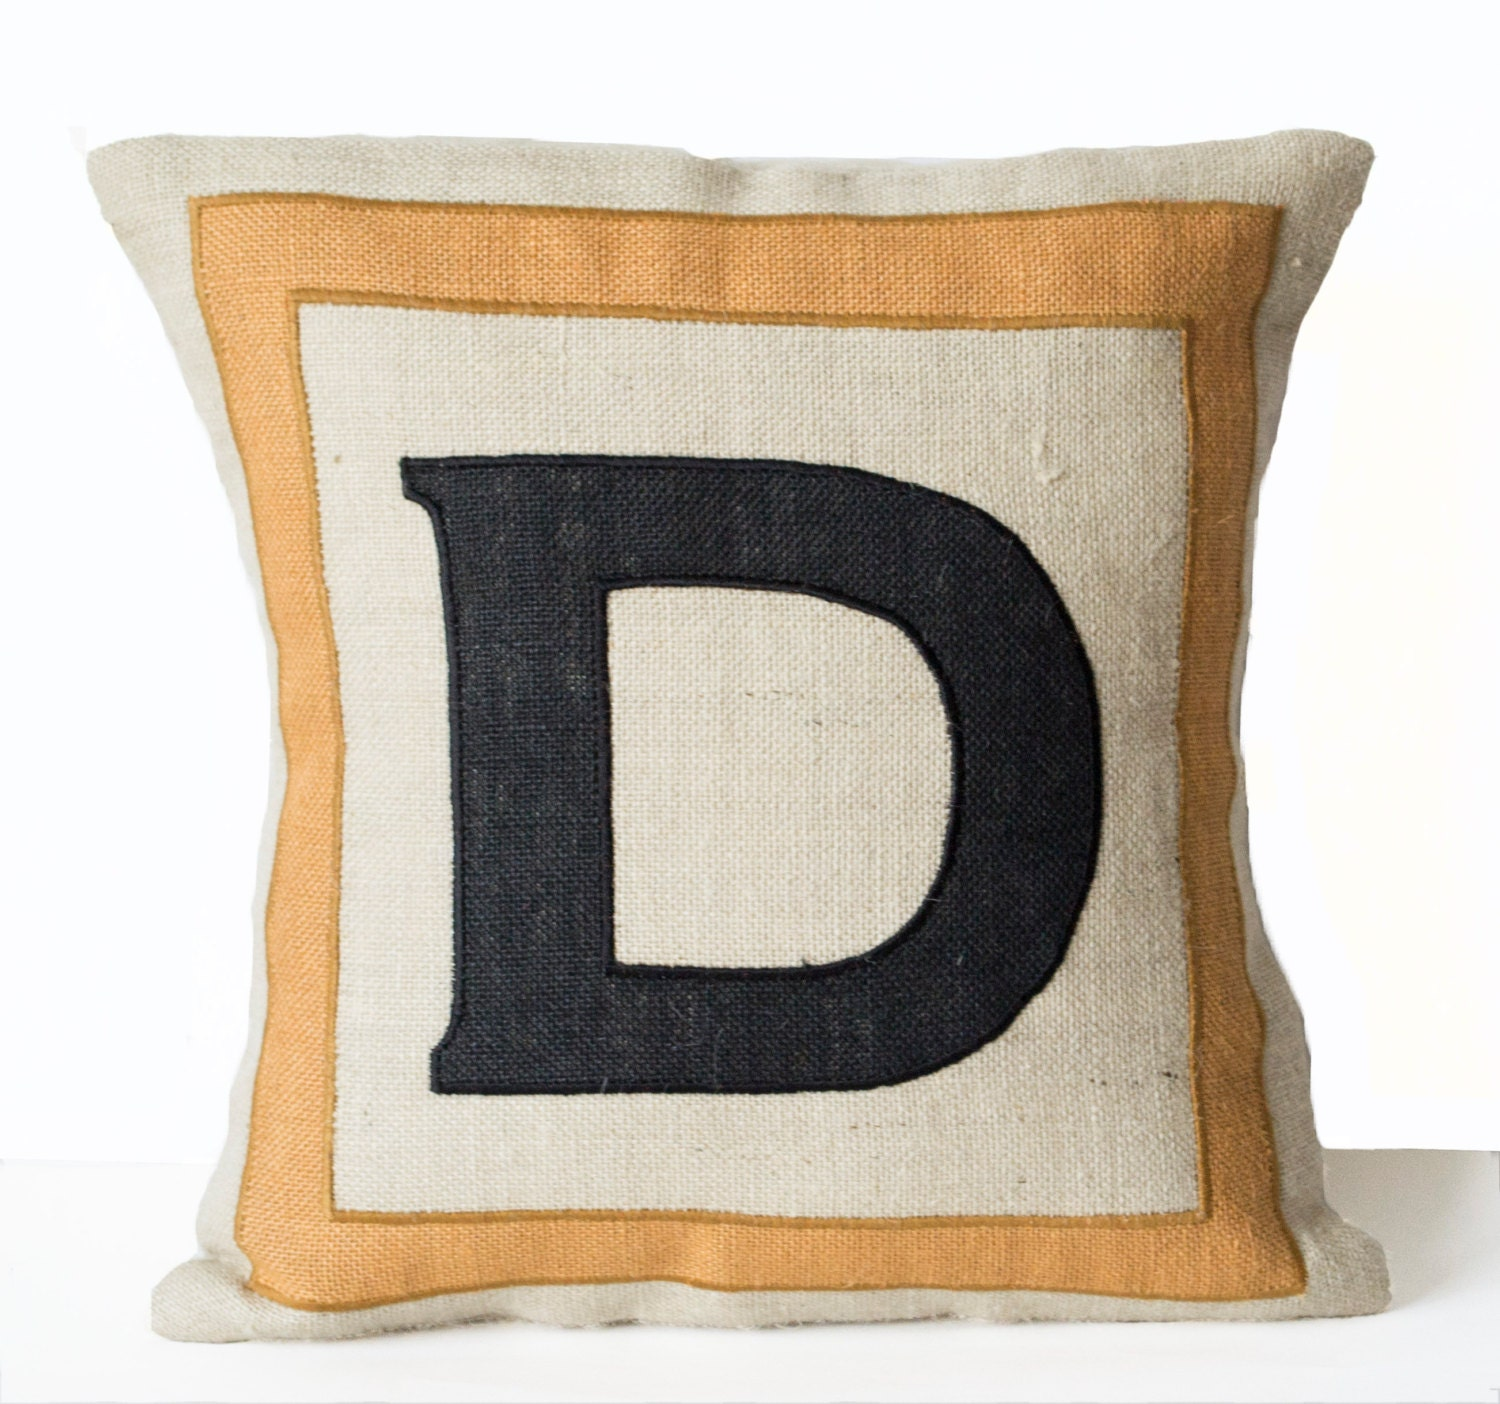 Decorative Pillow Cover Throw Pillow Case Personalized